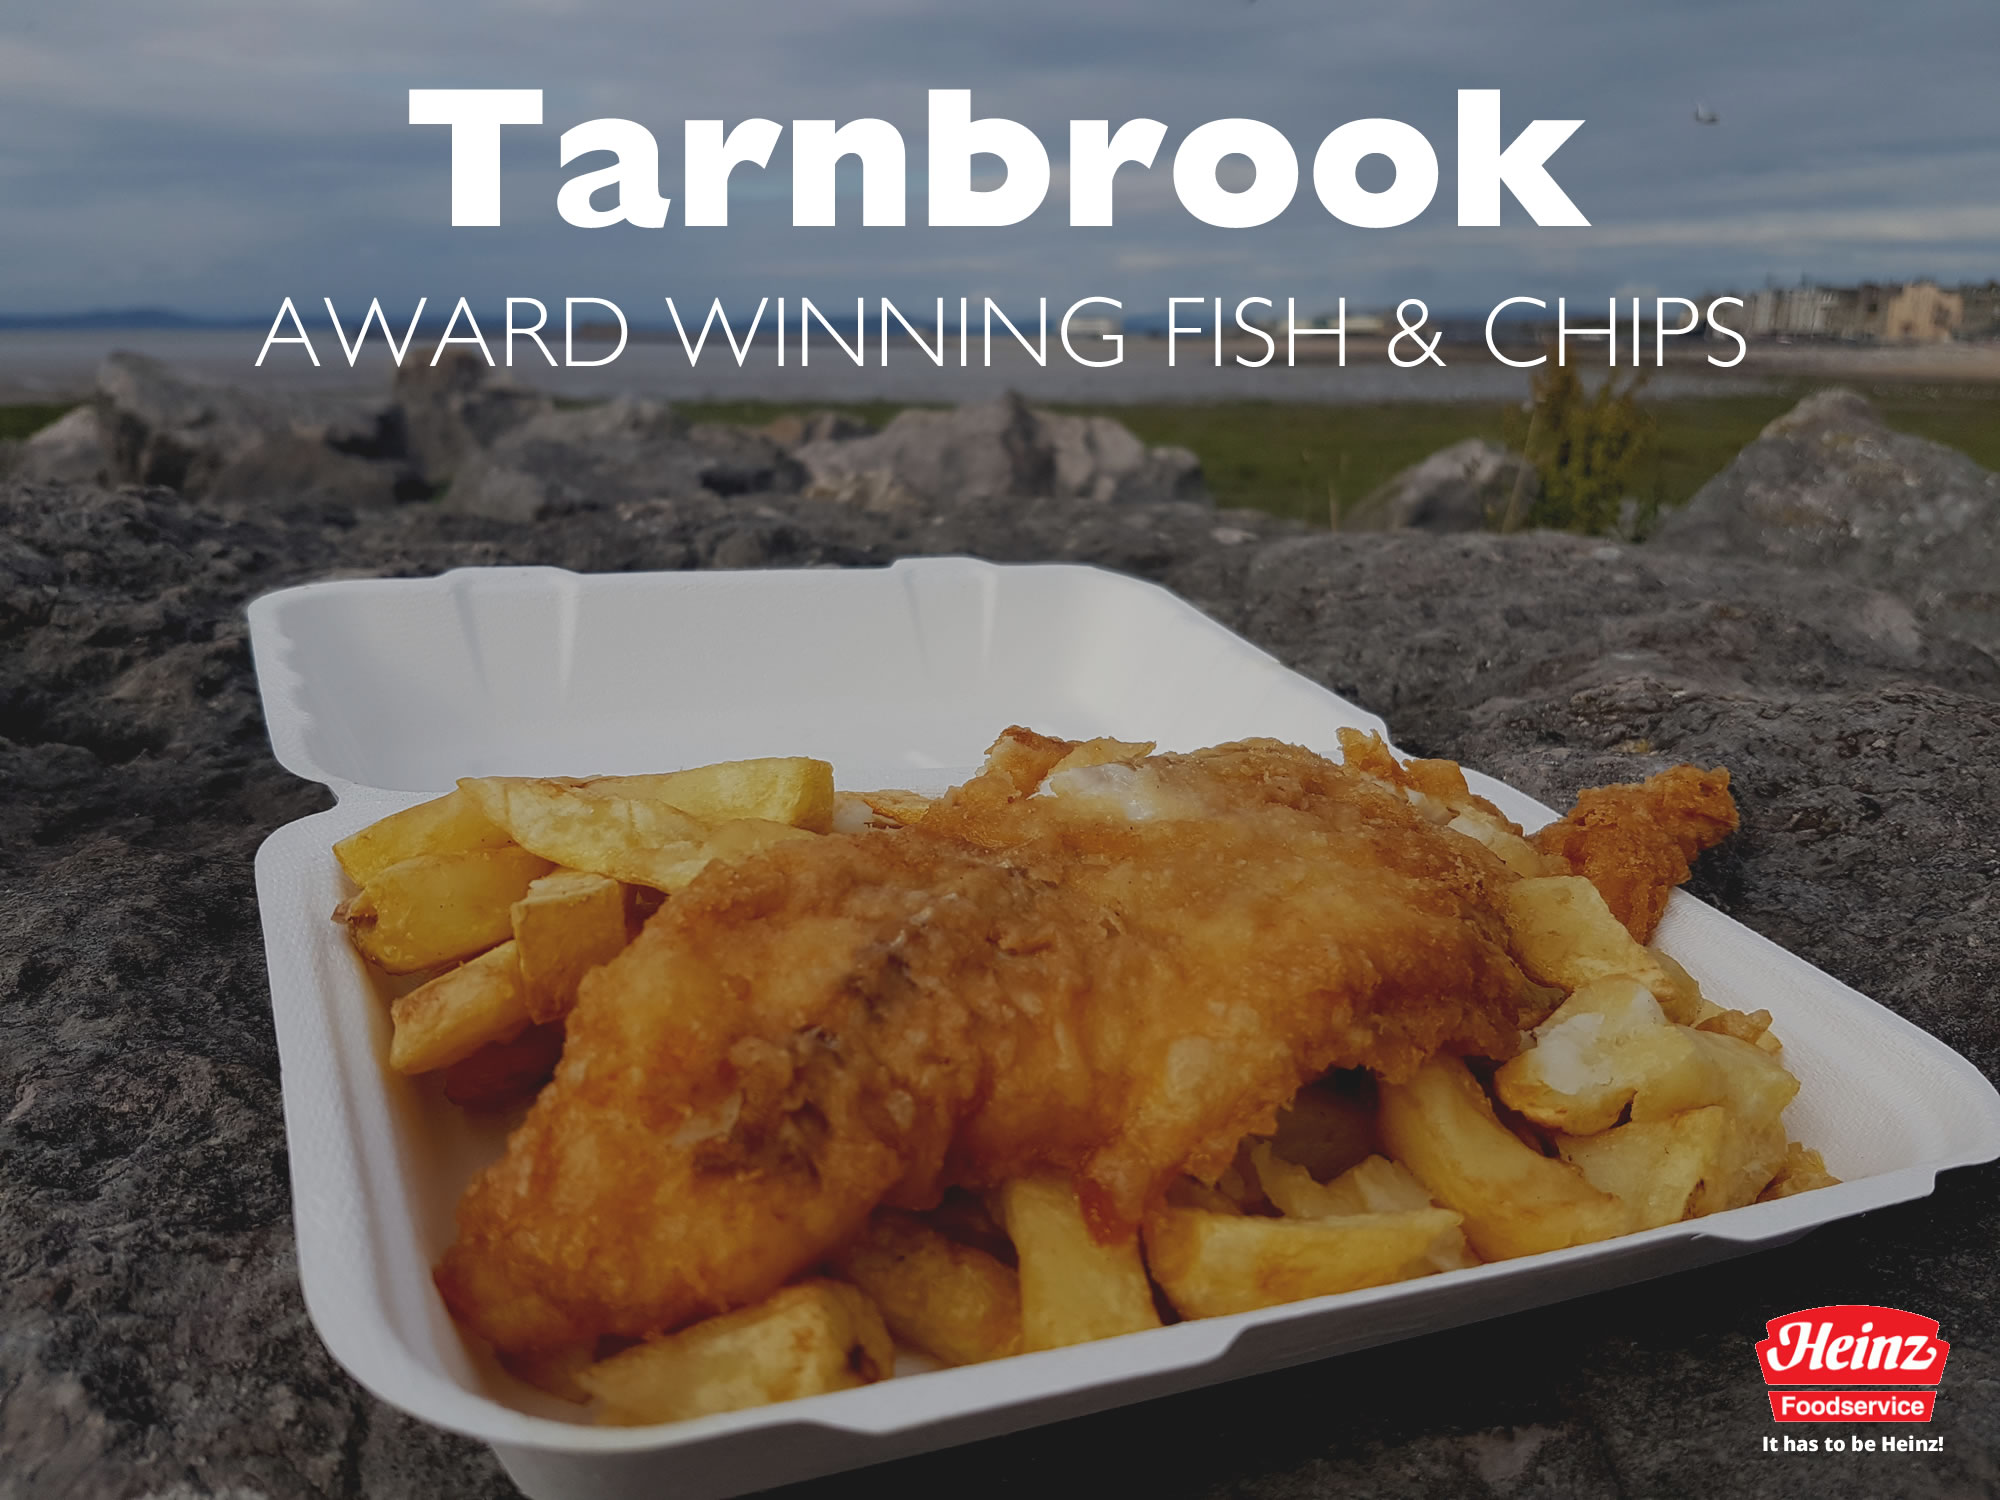 Tarnbrook Award Winning Fish and Chips